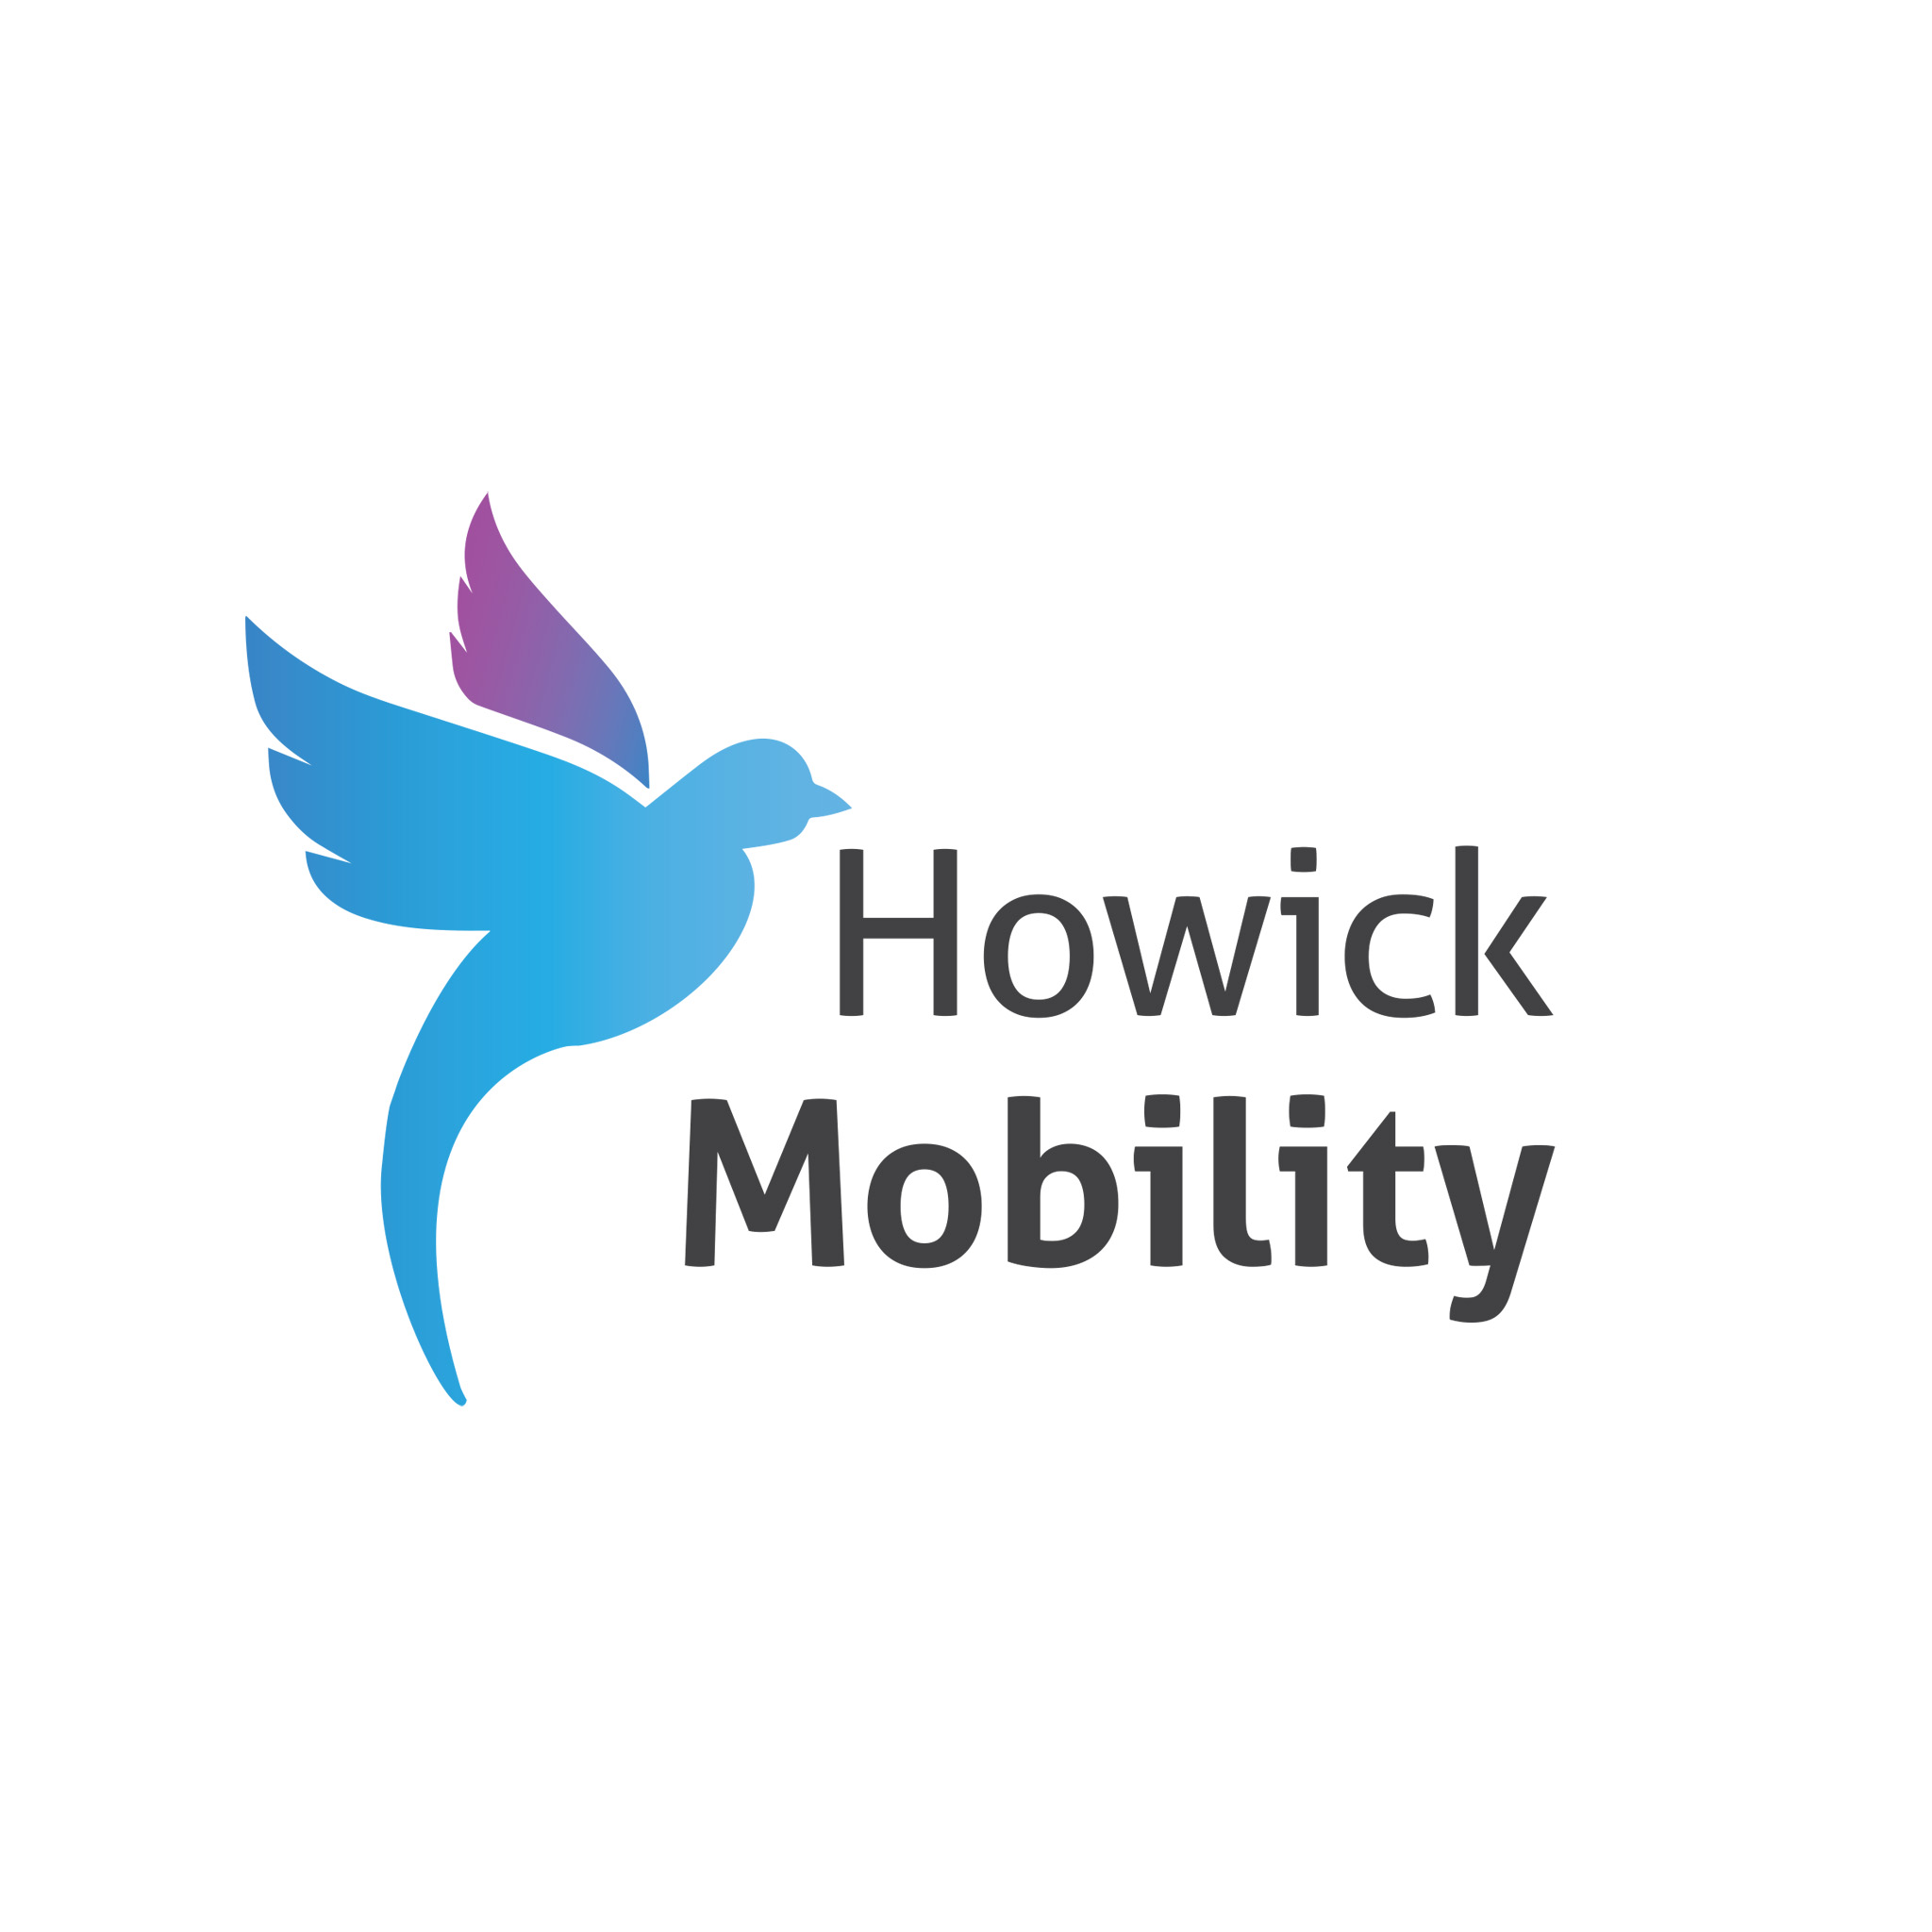 Howick Mobility